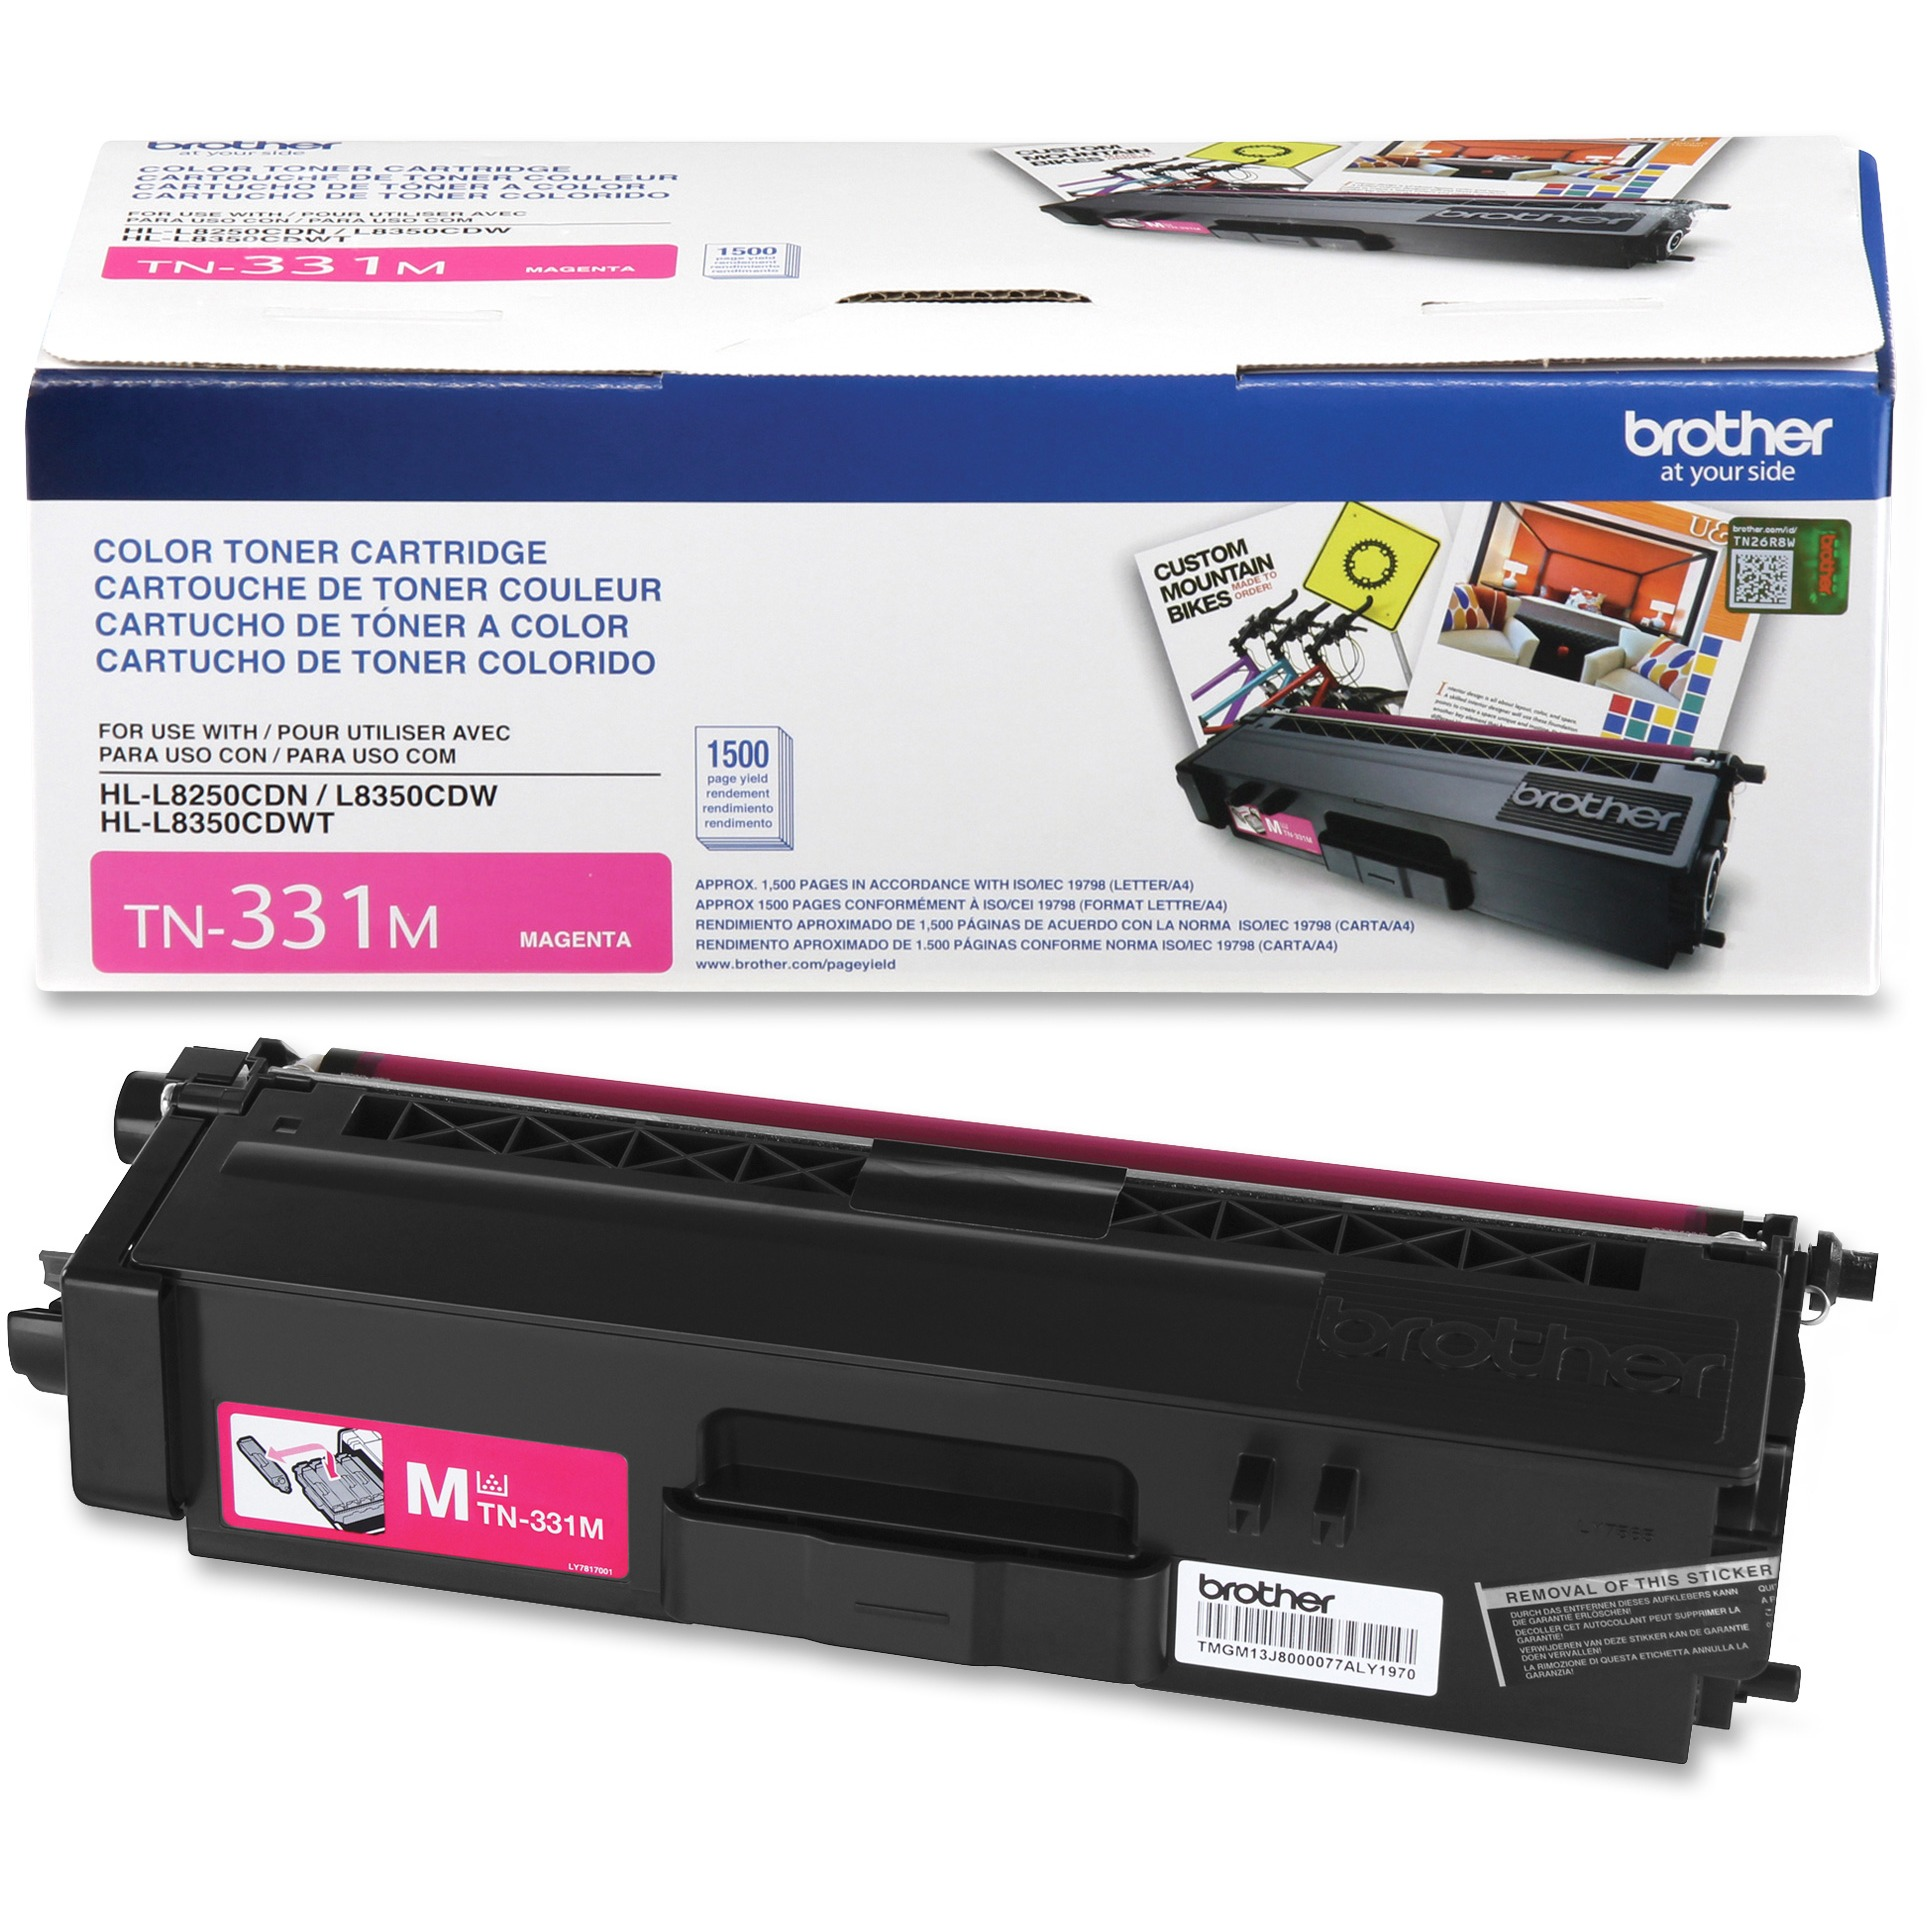 Brother TN331M Magenta Toner Cartridge